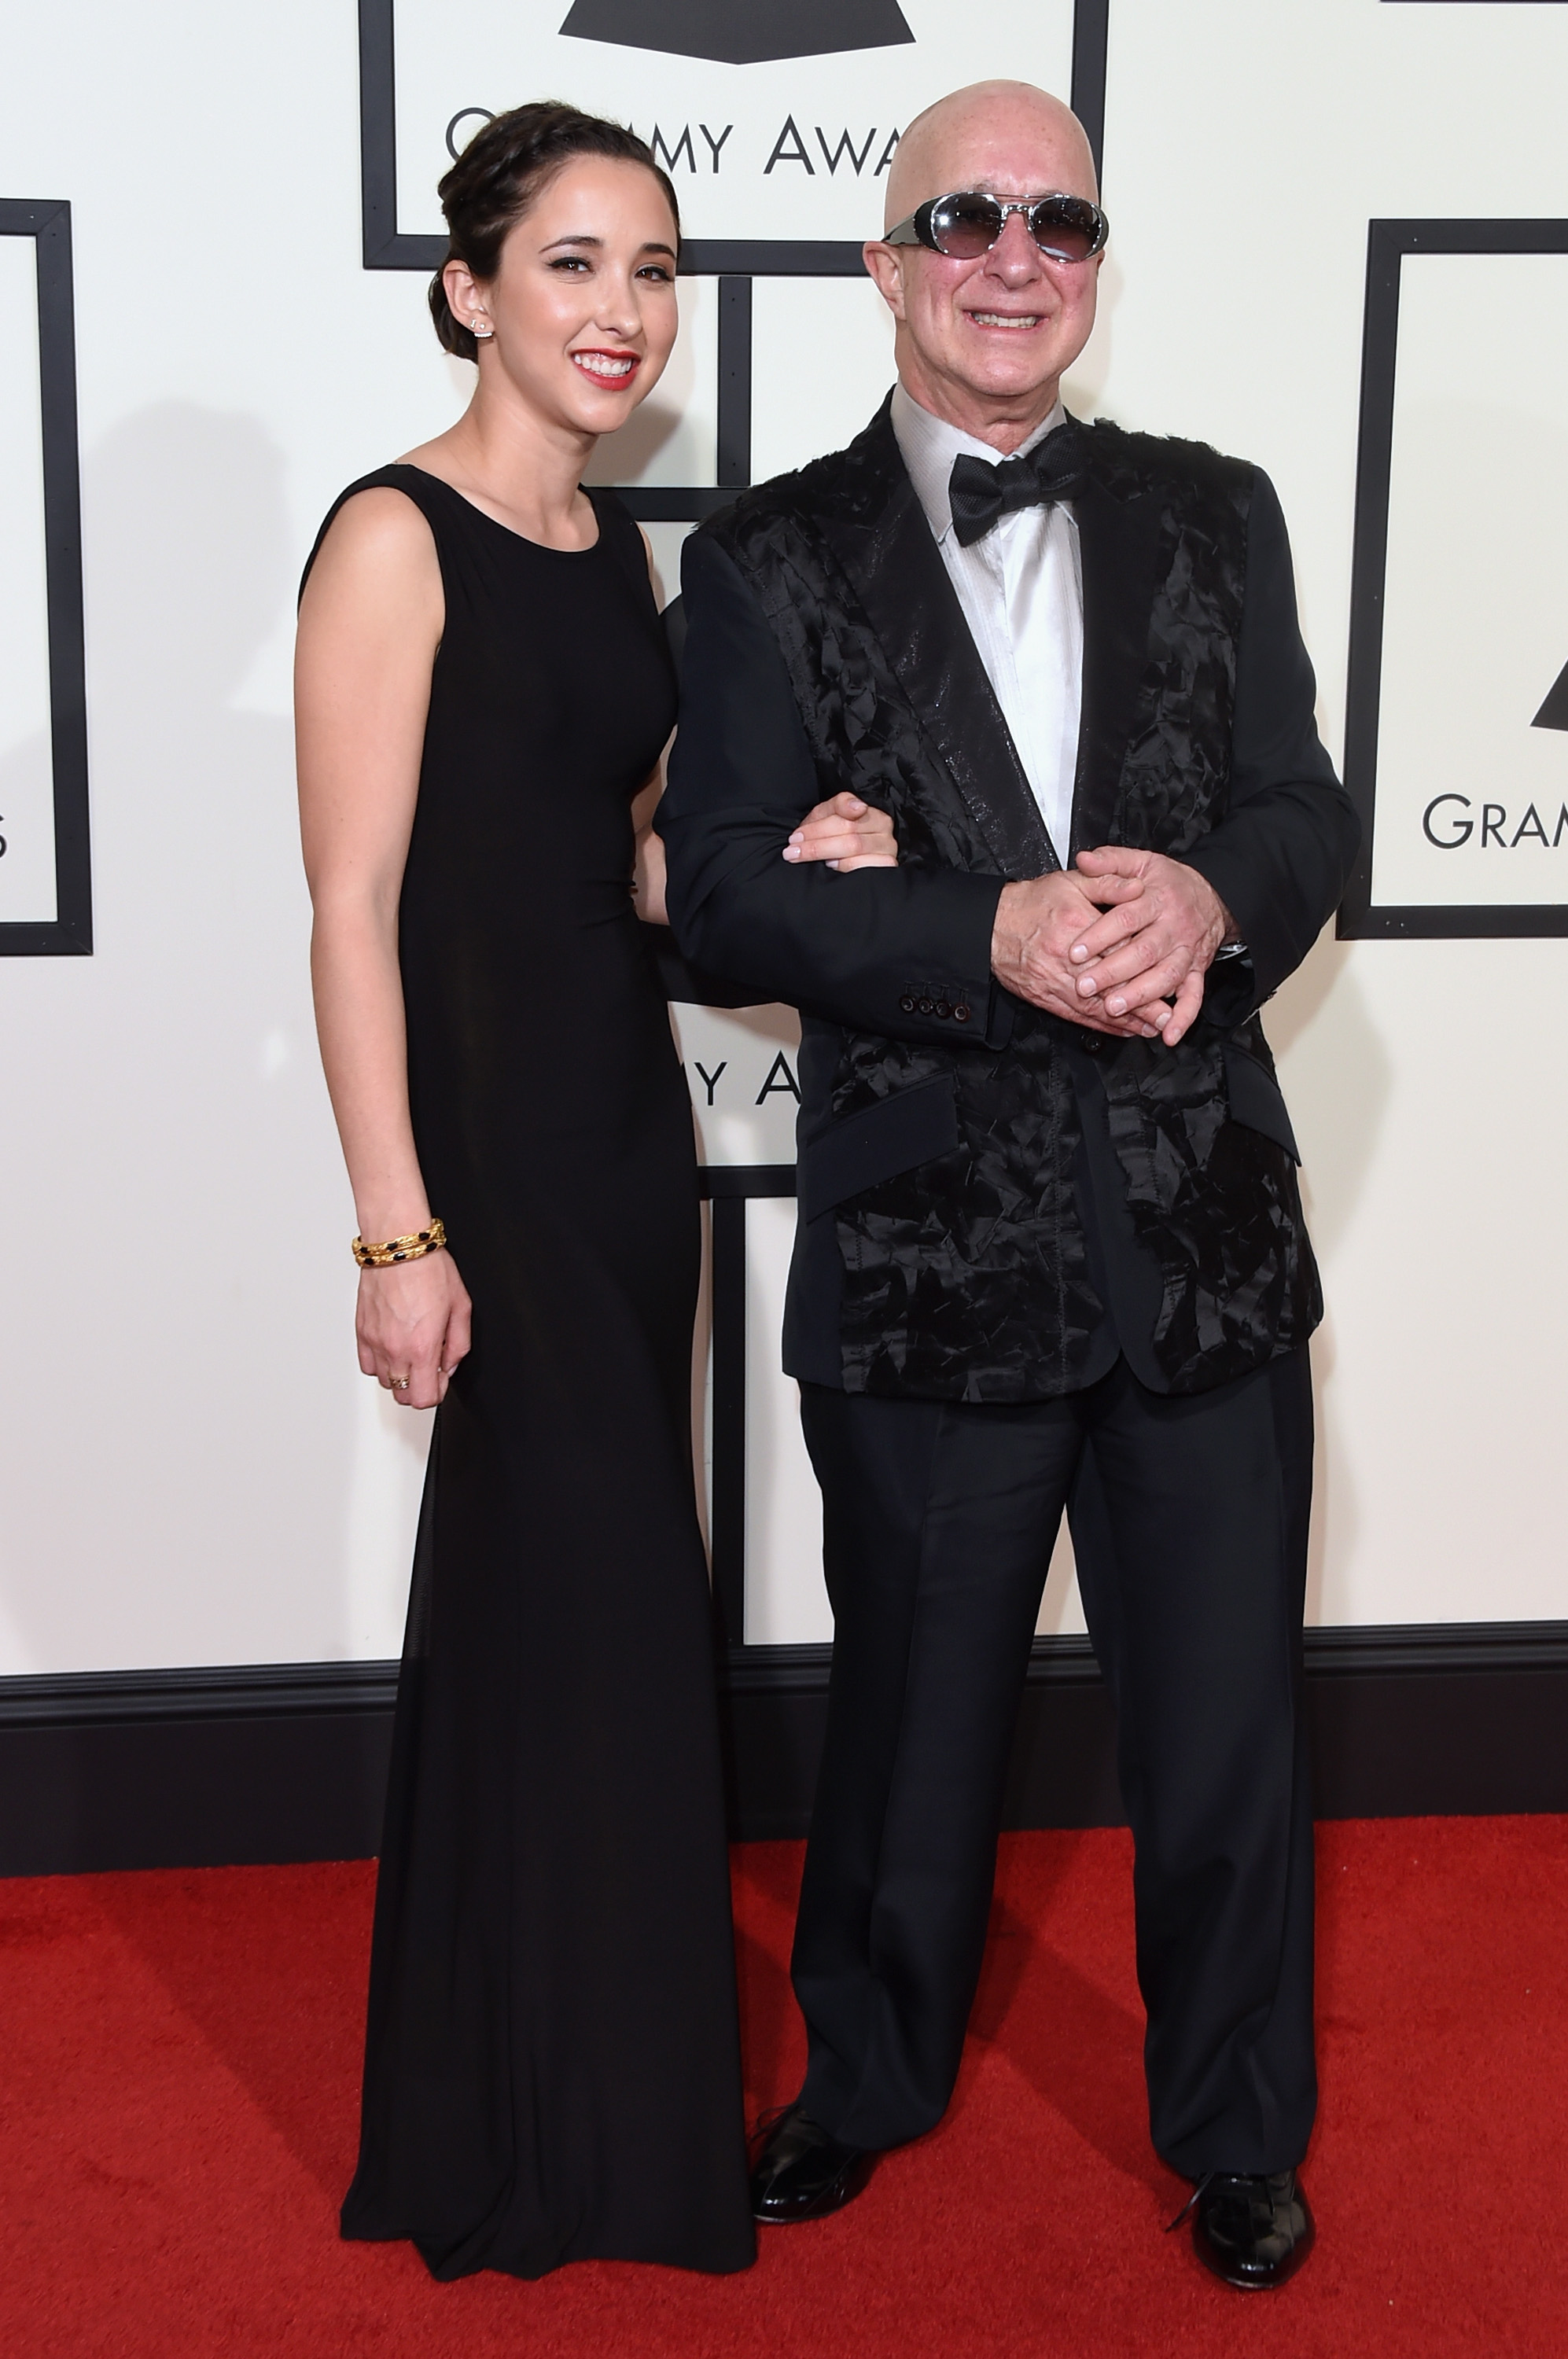 Victoria Shaffer, left, and Paul Shaffer, right, attend the 58th GRAMMY Awards at Staples Center on Feb. 15, 2016 in Los Angeles.